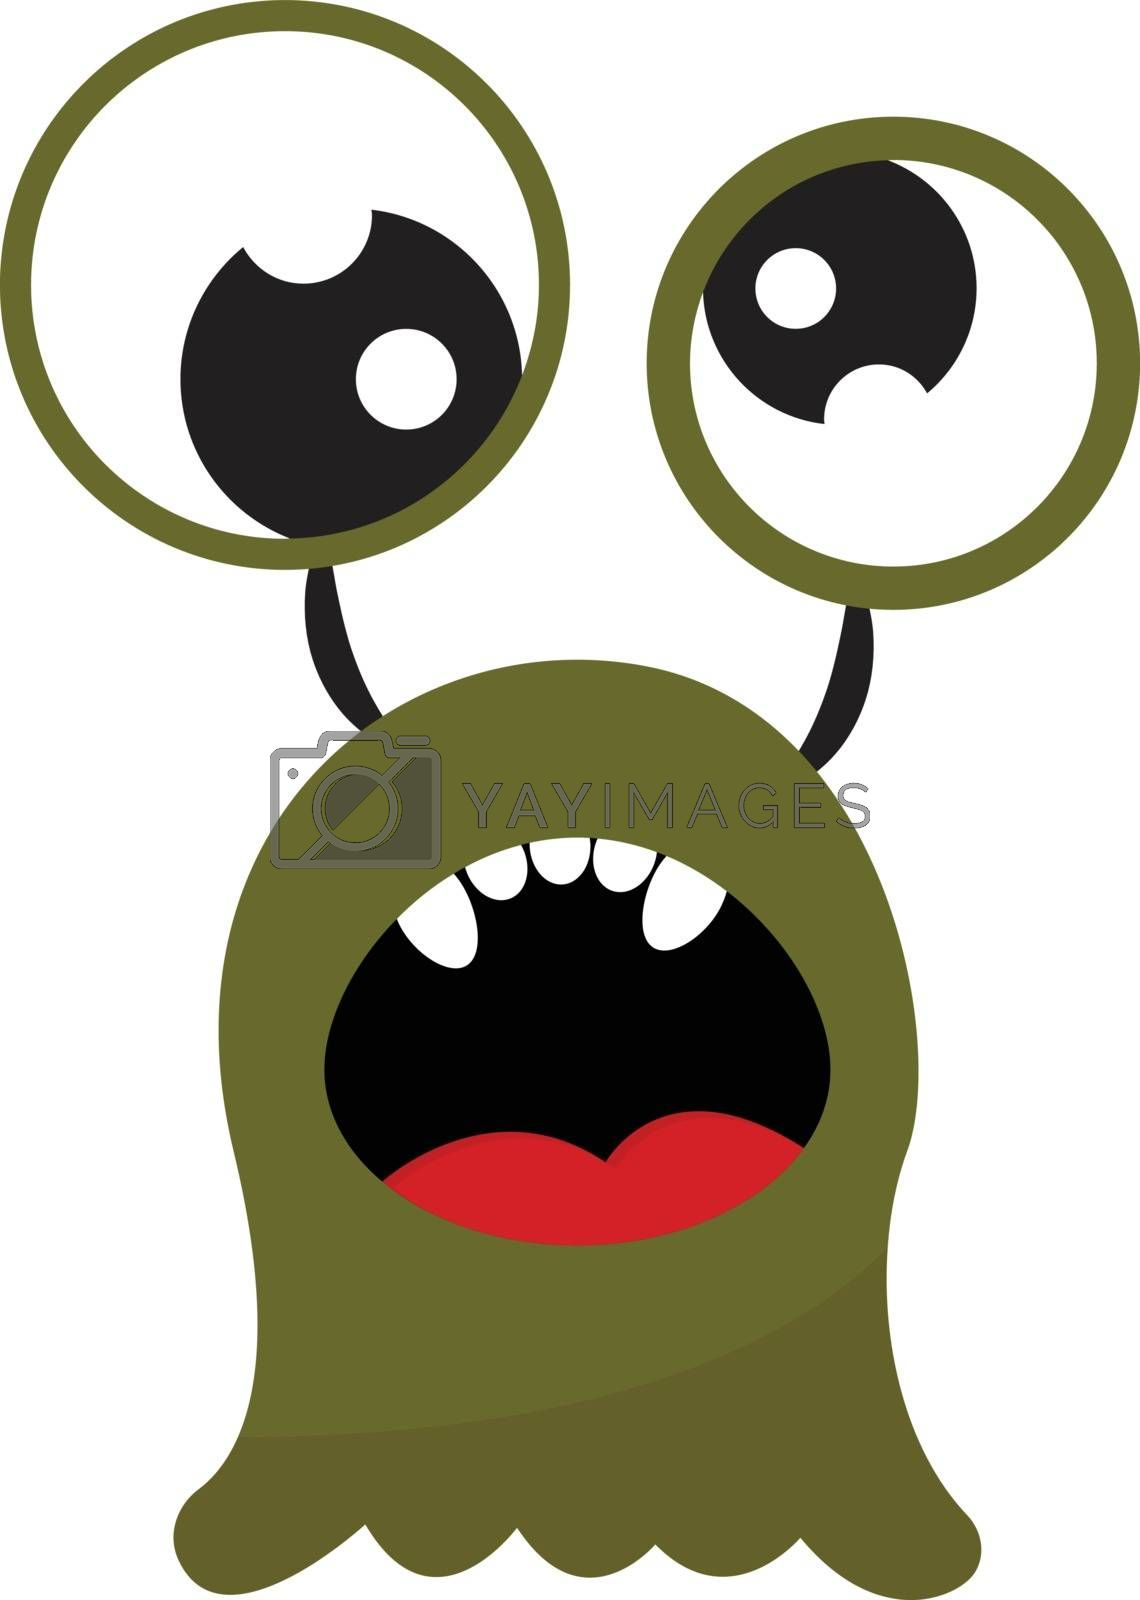 Royalty free image of Cartoon funny green monster with an open mouth exposing five ova by Morphart